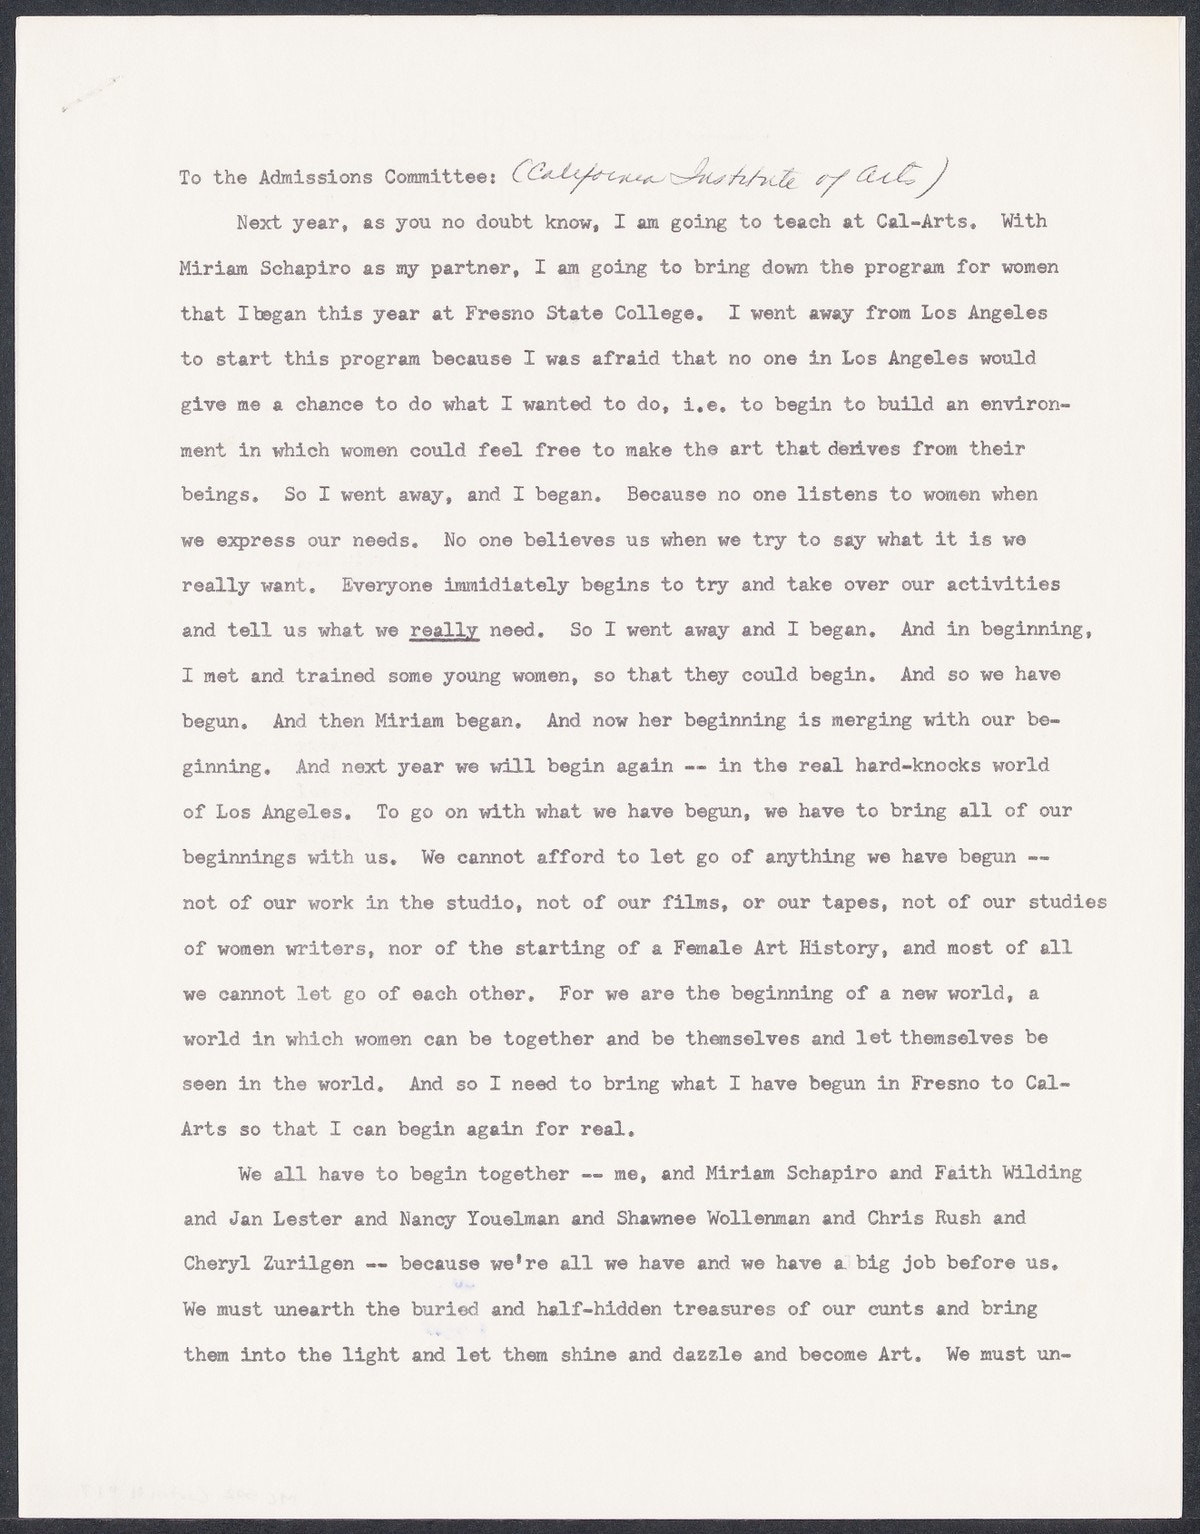 Letter from Judy Chicago